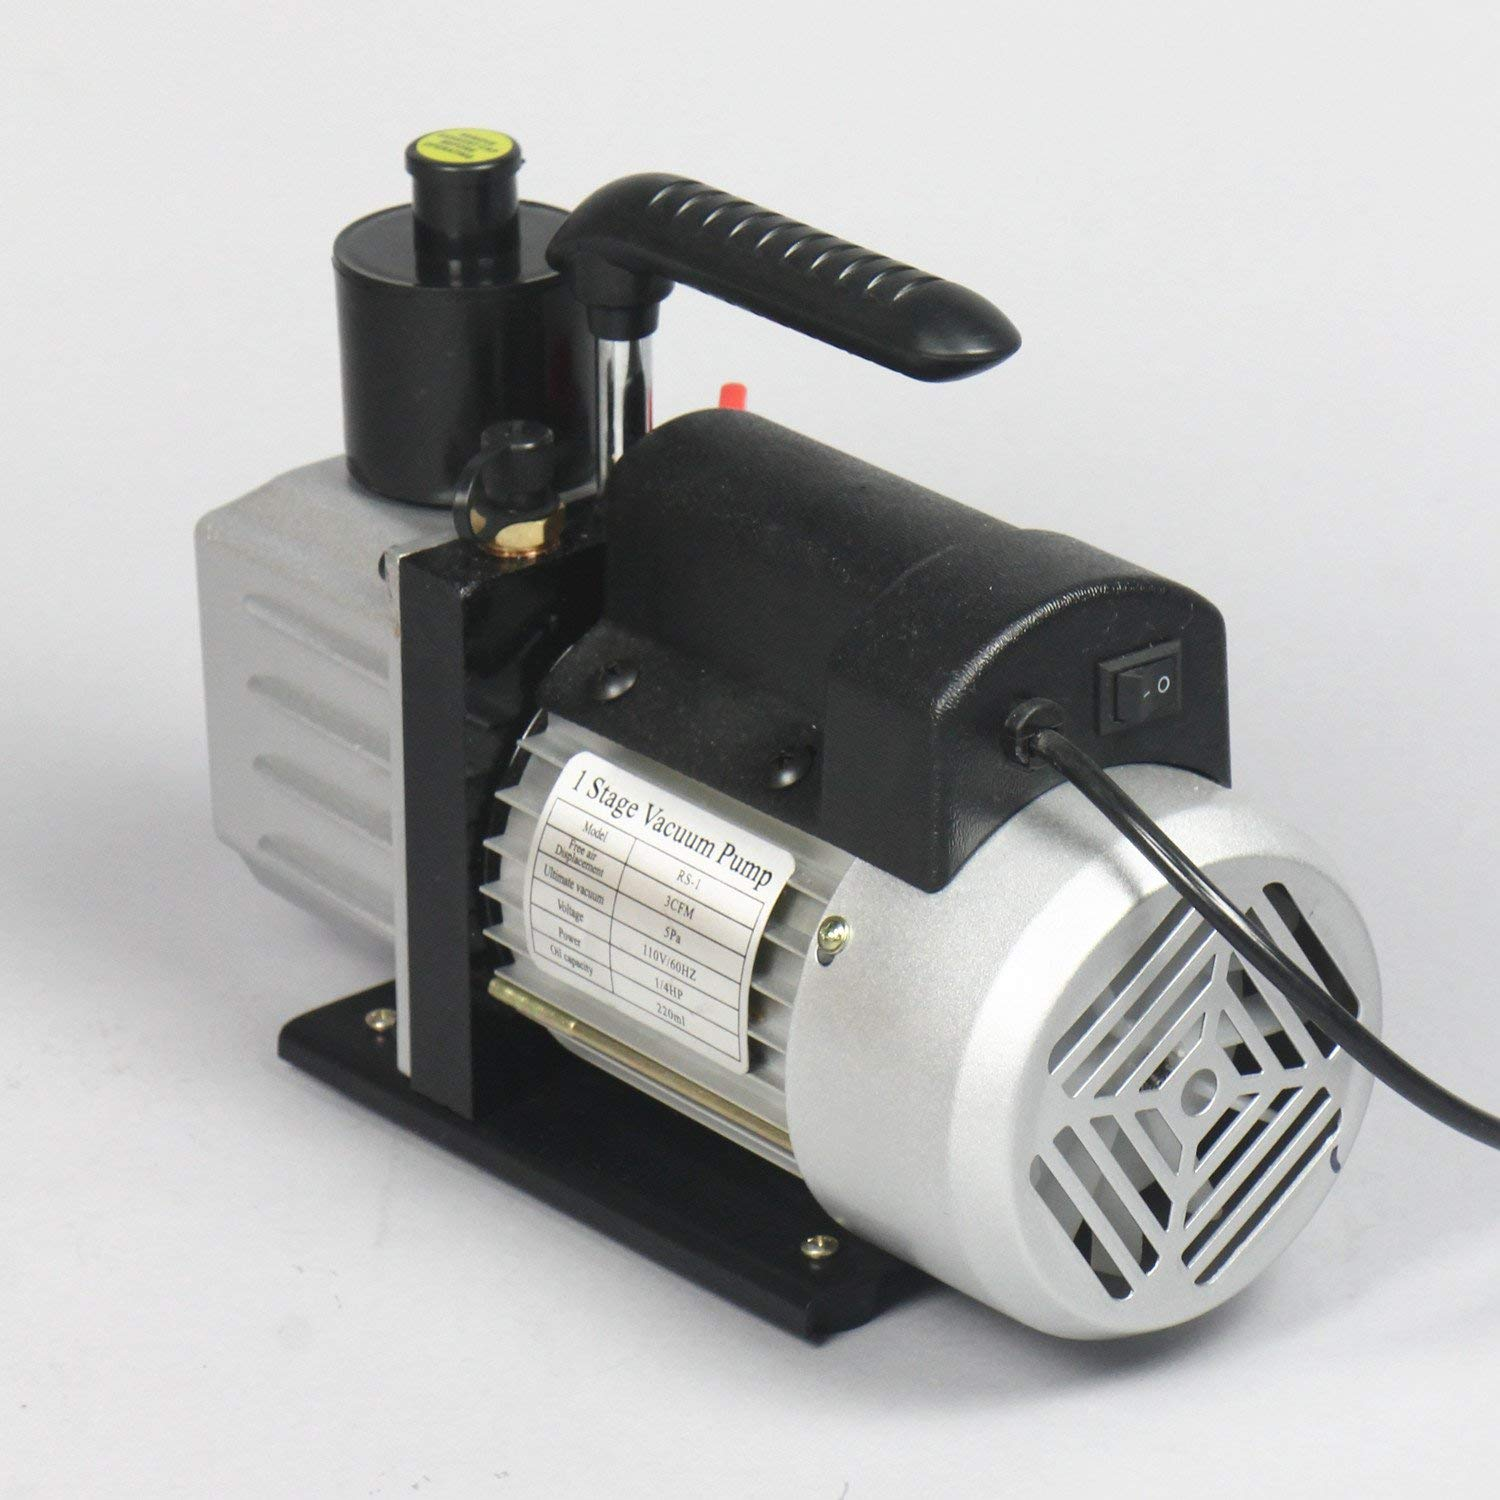 Pump Oil Not Included Ablaze 3 CFM Single Stage Vacuum Pump Perfect for Vacuum Chamber Series